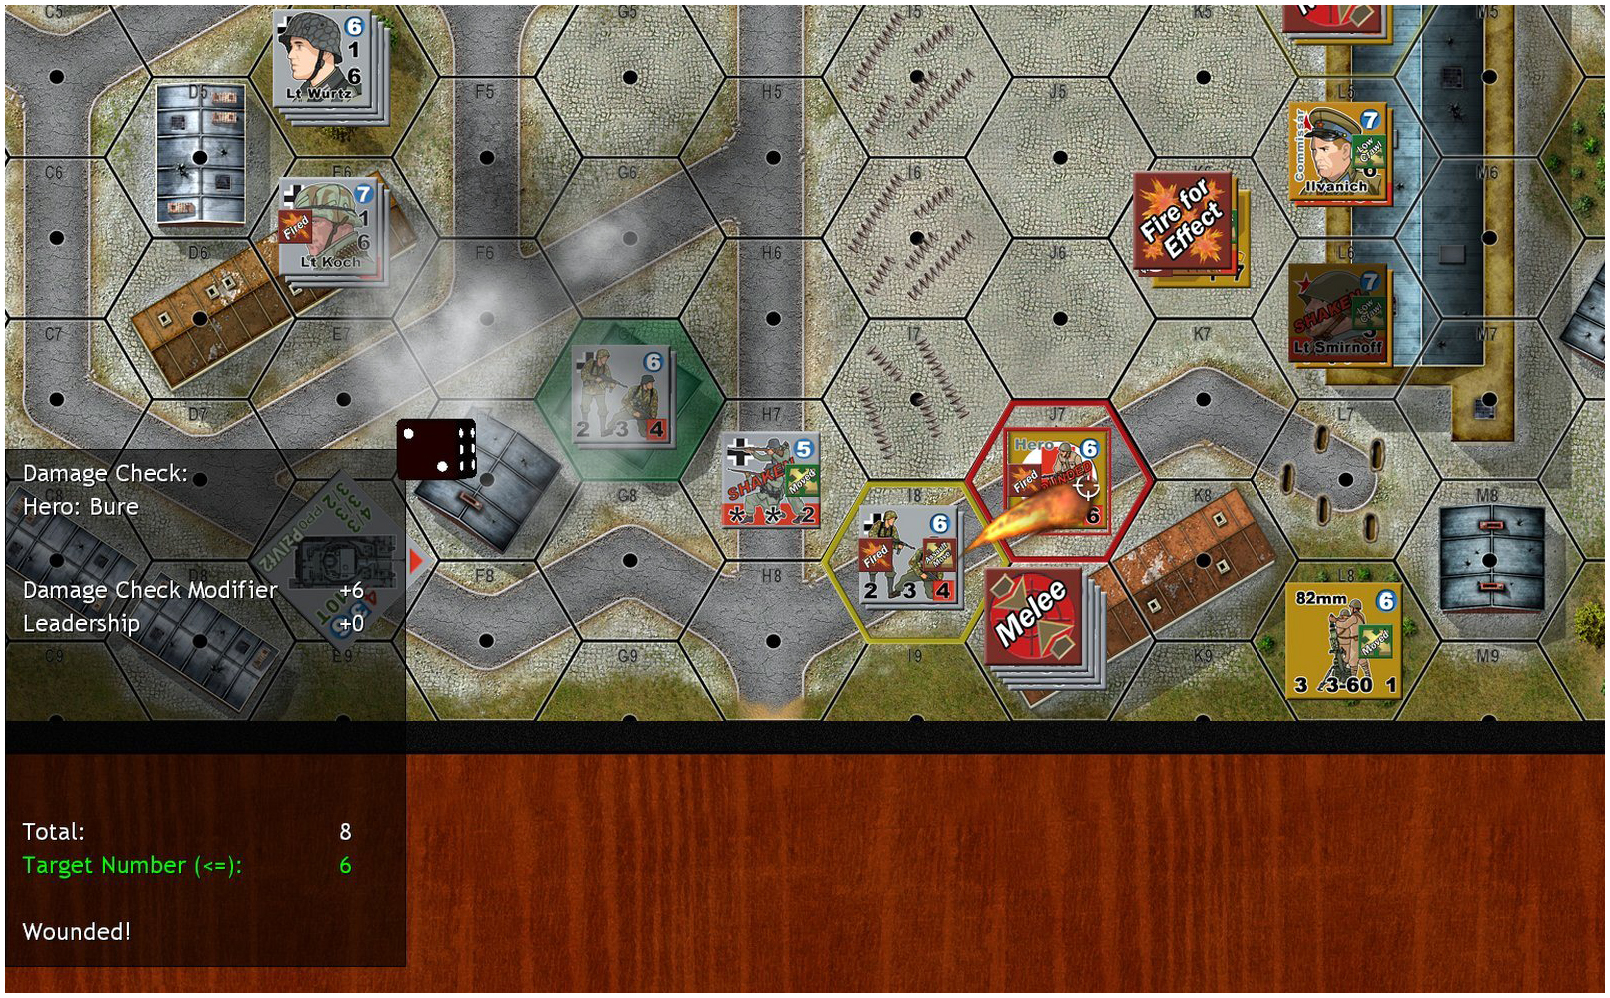 Pavlov and his team unwisely leave the safety of their house to assault a flamethrower unit